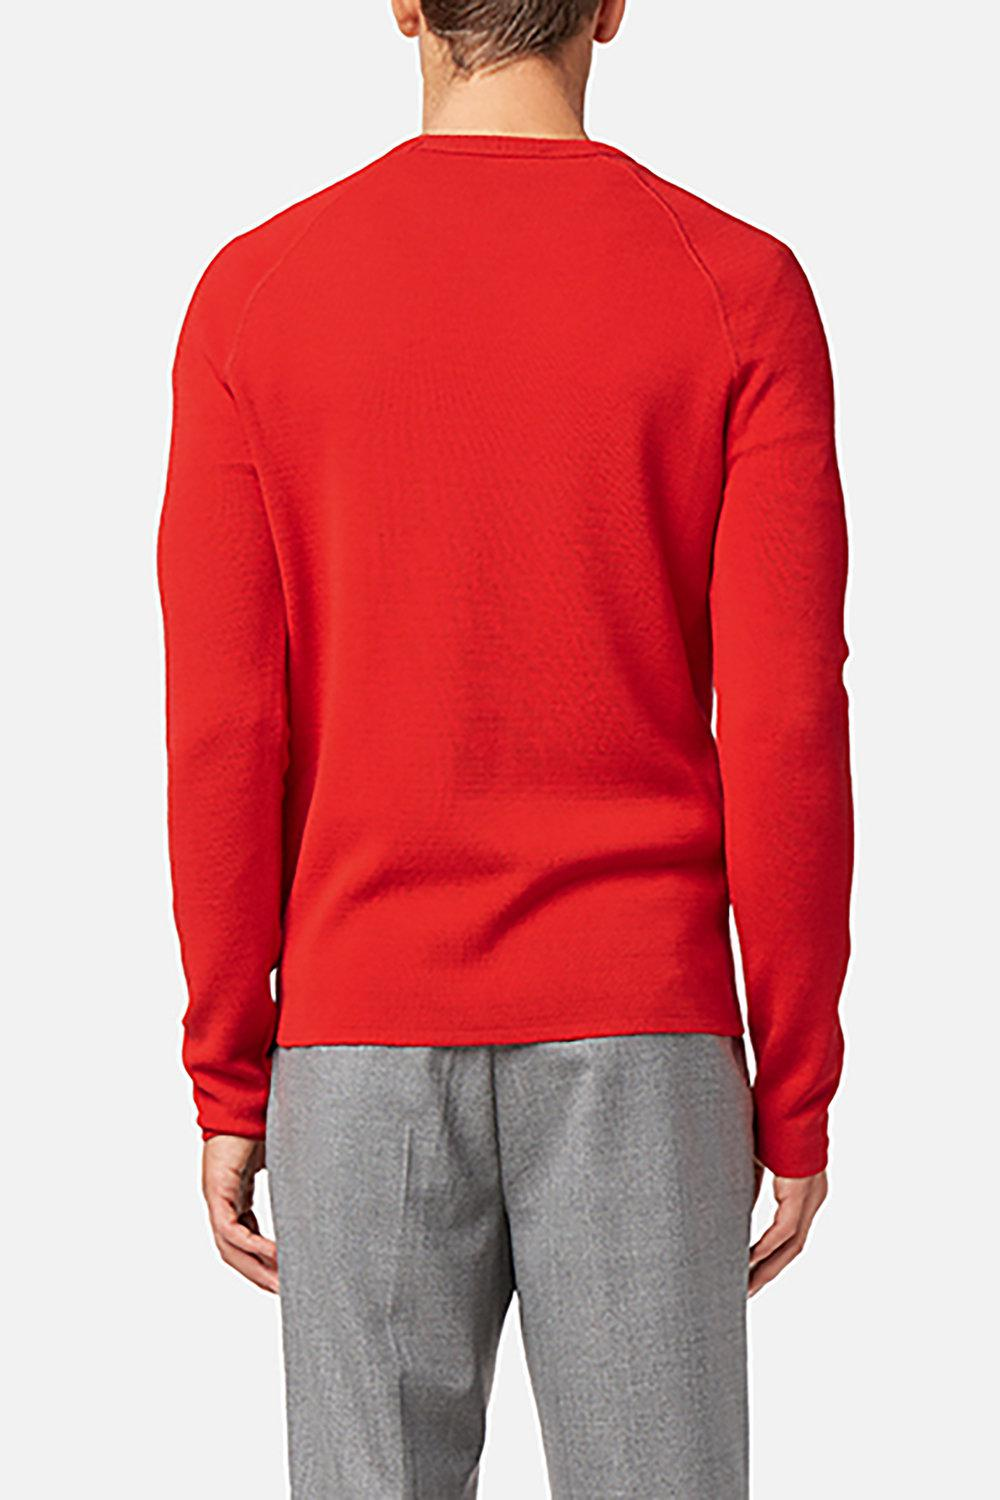 AMI Synthetic Crew Neck Raglan Sleeves Sweater in Red for Men